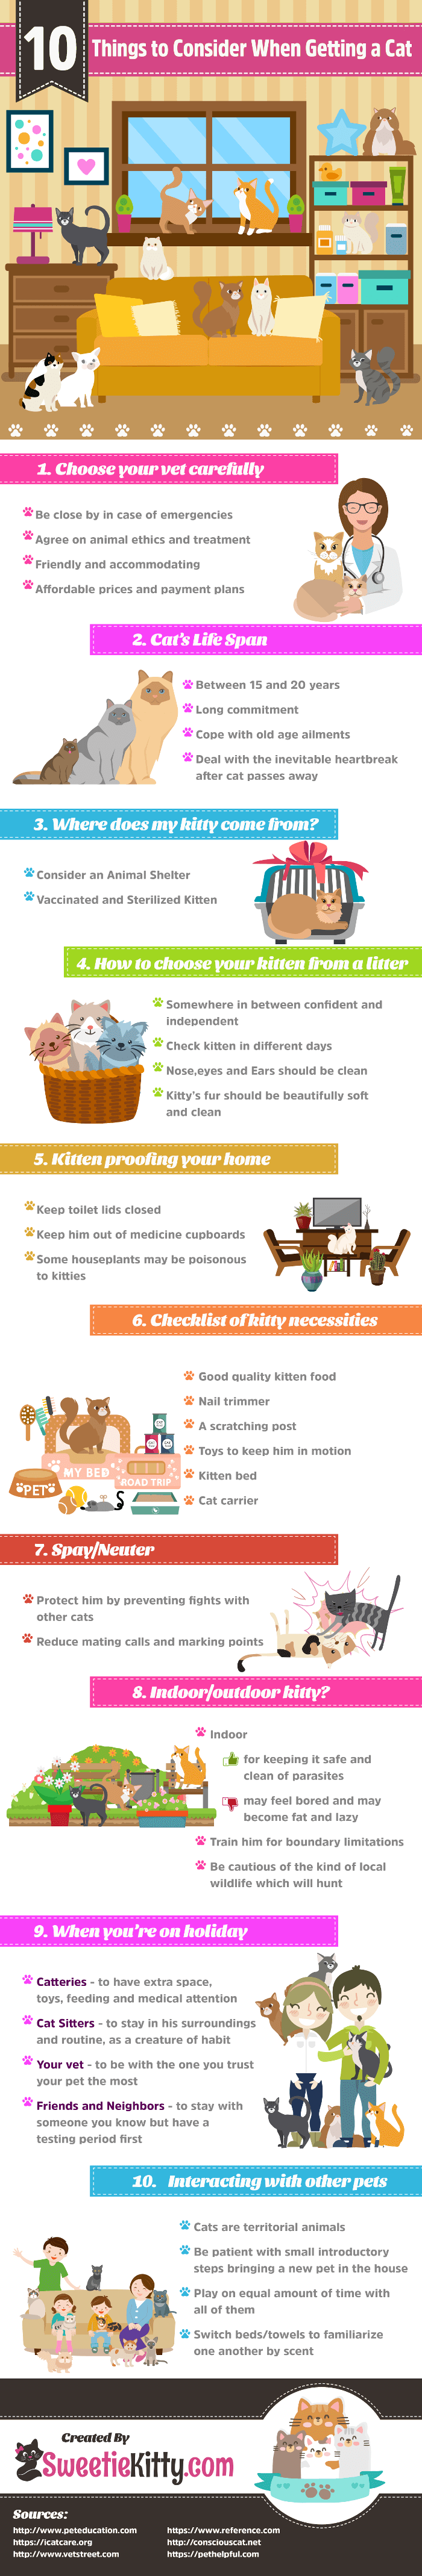 Infographic of 10 things to consider when getting a cat